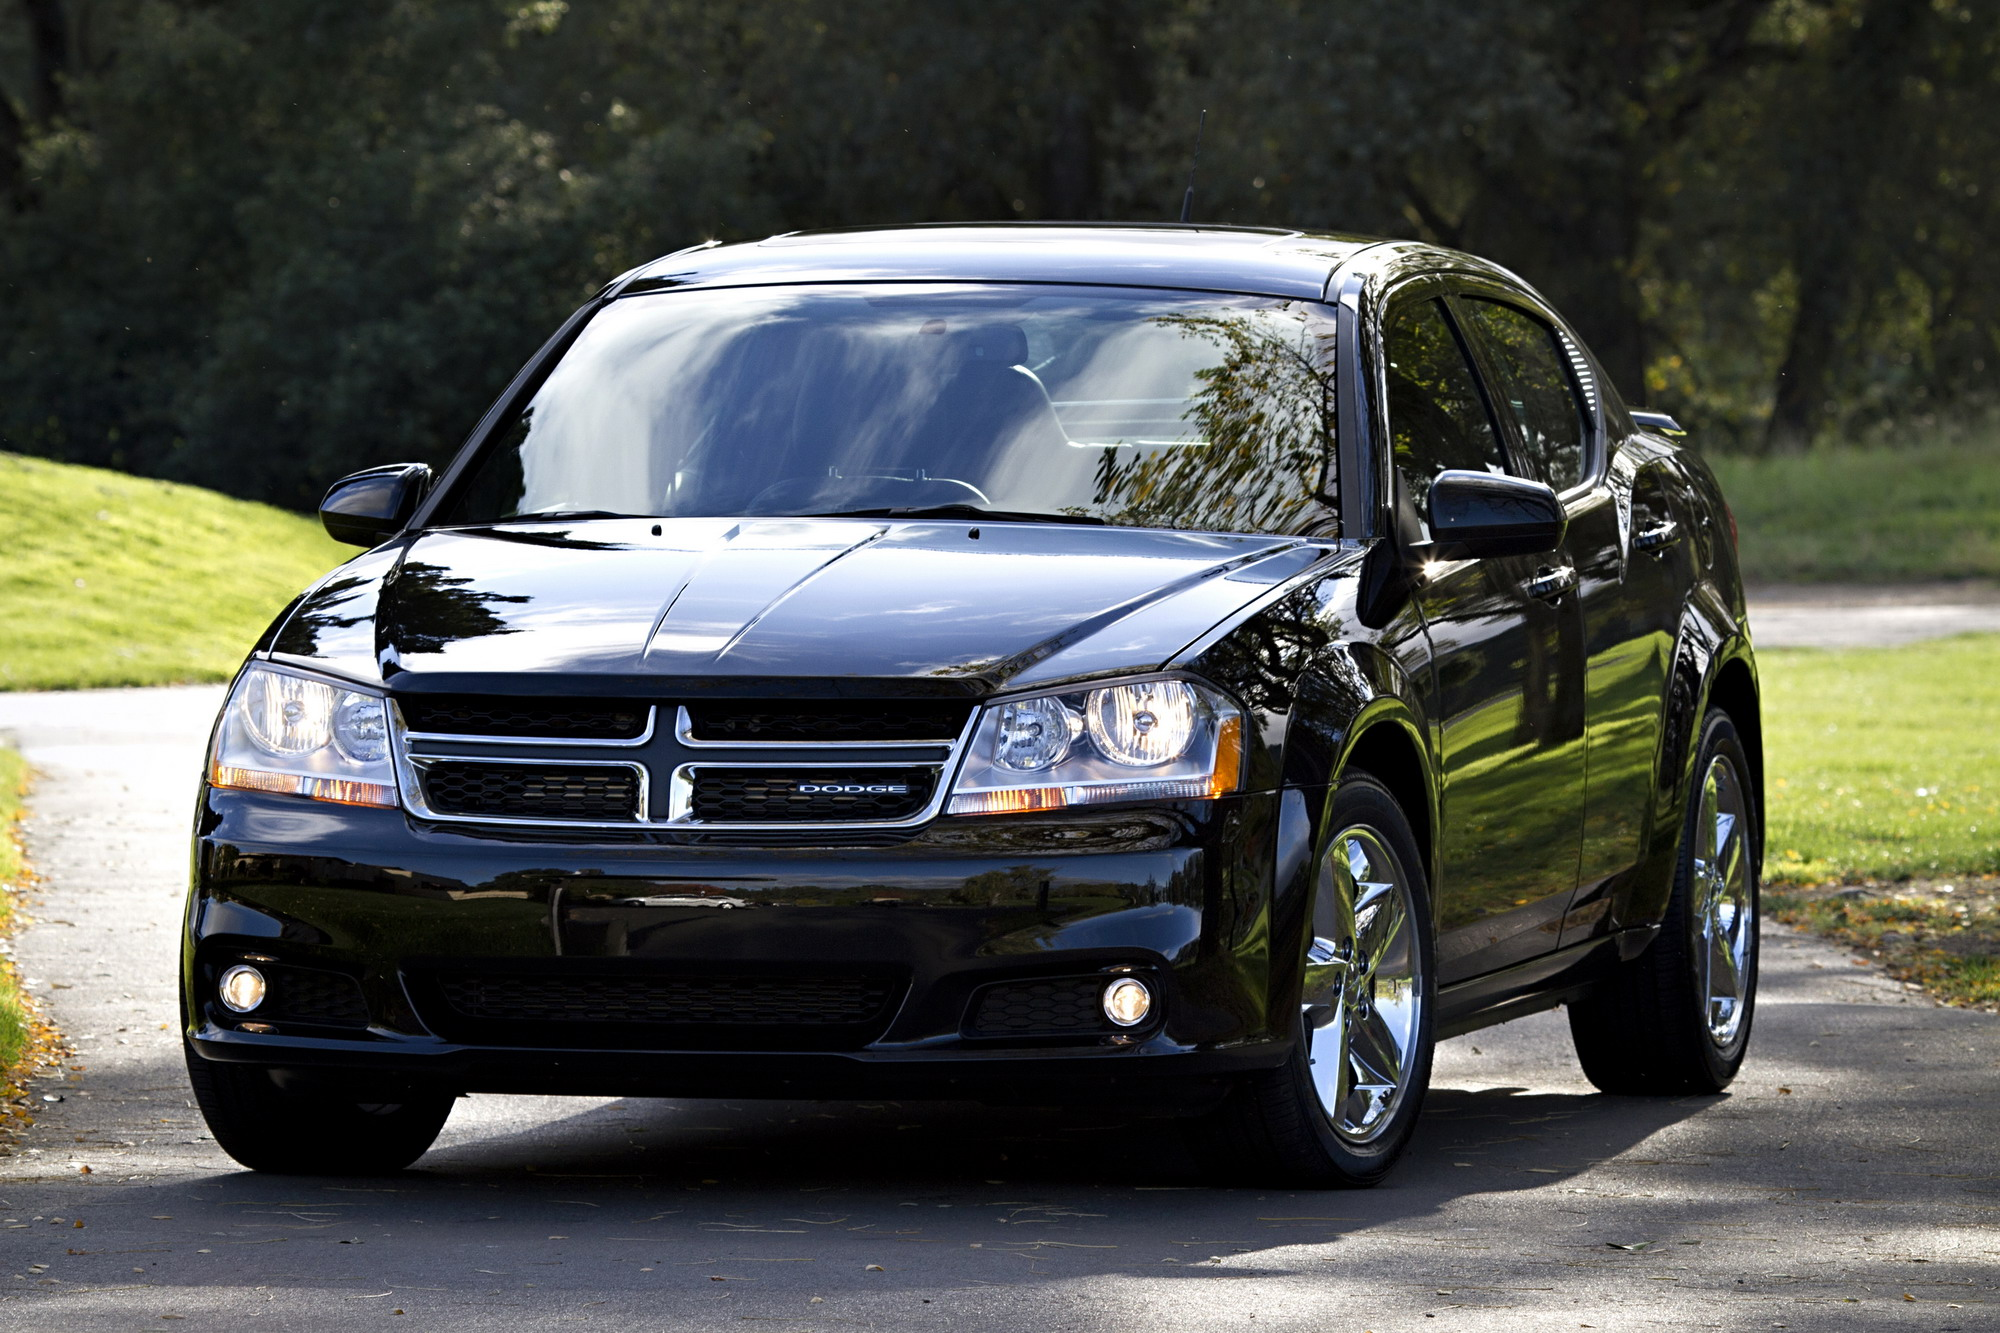 Dodge Avenger Reviews Specs Prices Photos And Videos Top Speed 2005 Chrysler Pt Cruiser Fuel Filter 2012 Se V6